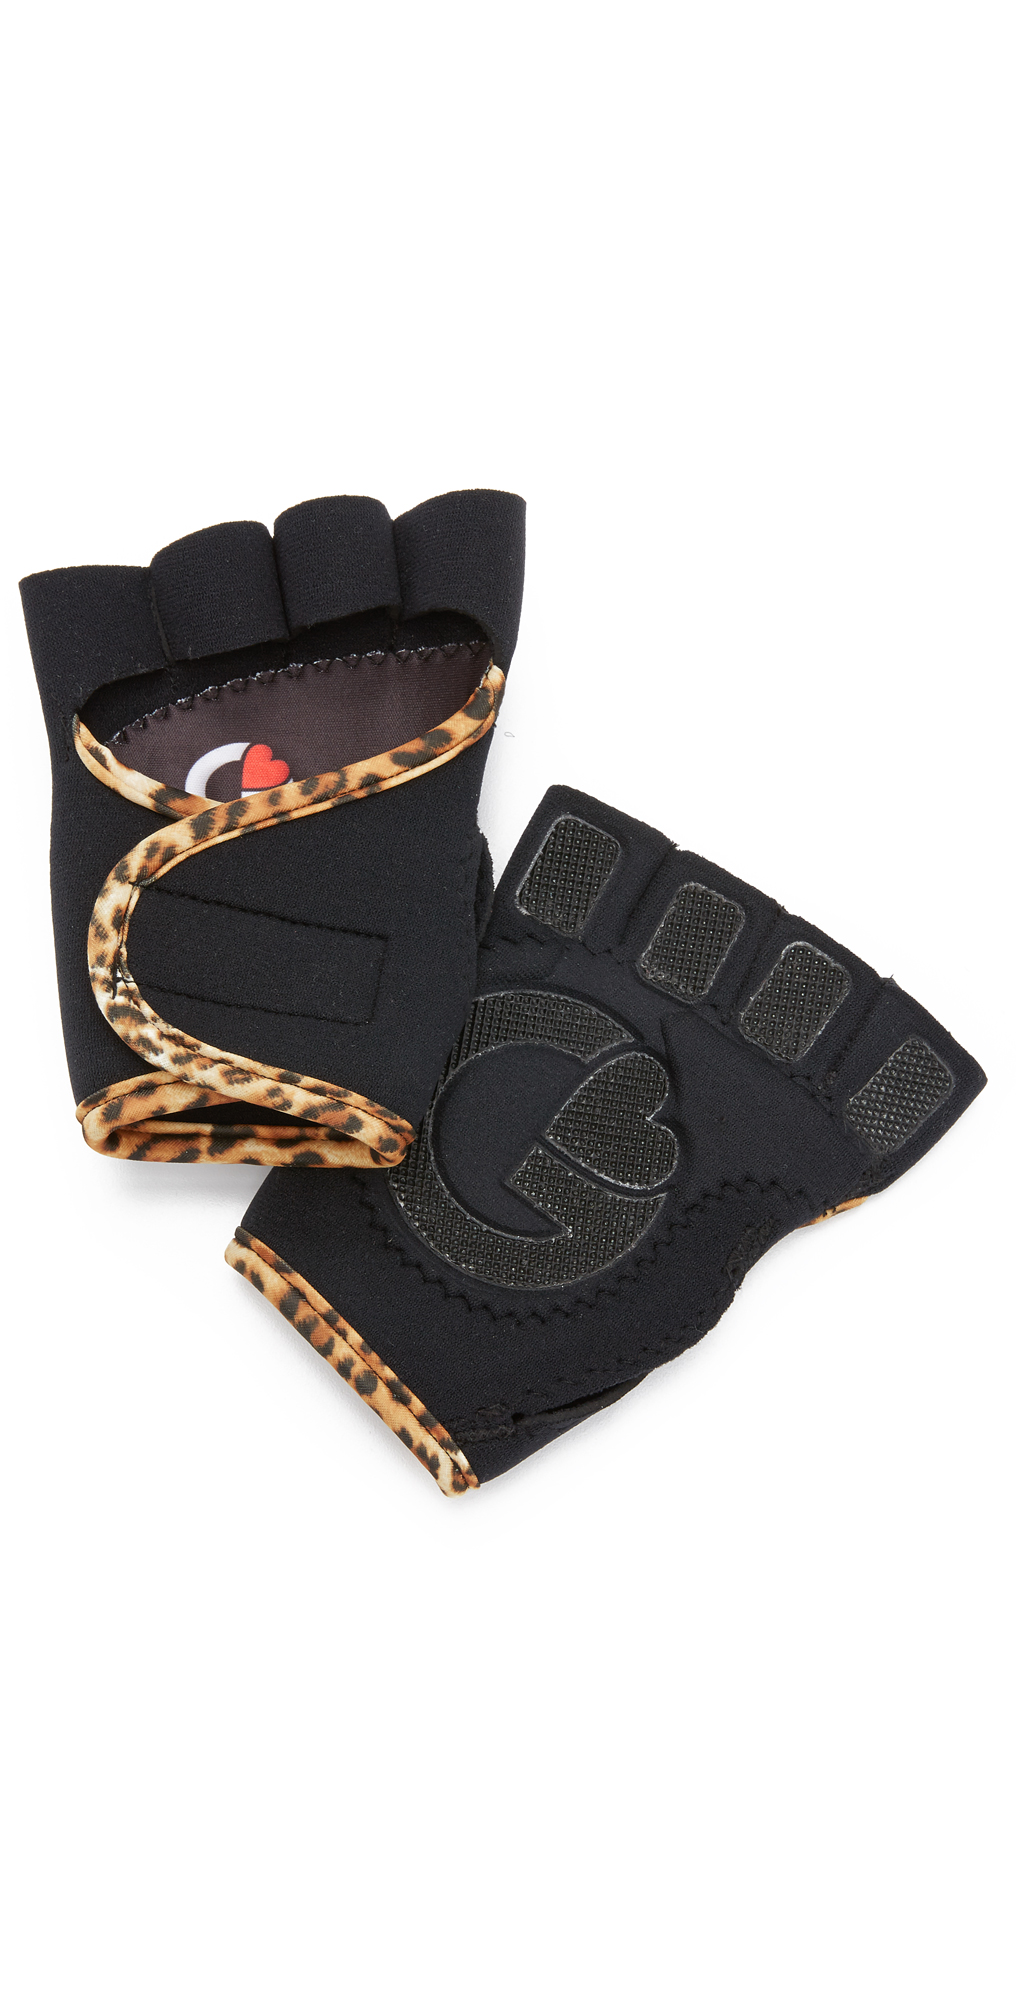 G-Loves Black with Leopard Workout Gloves